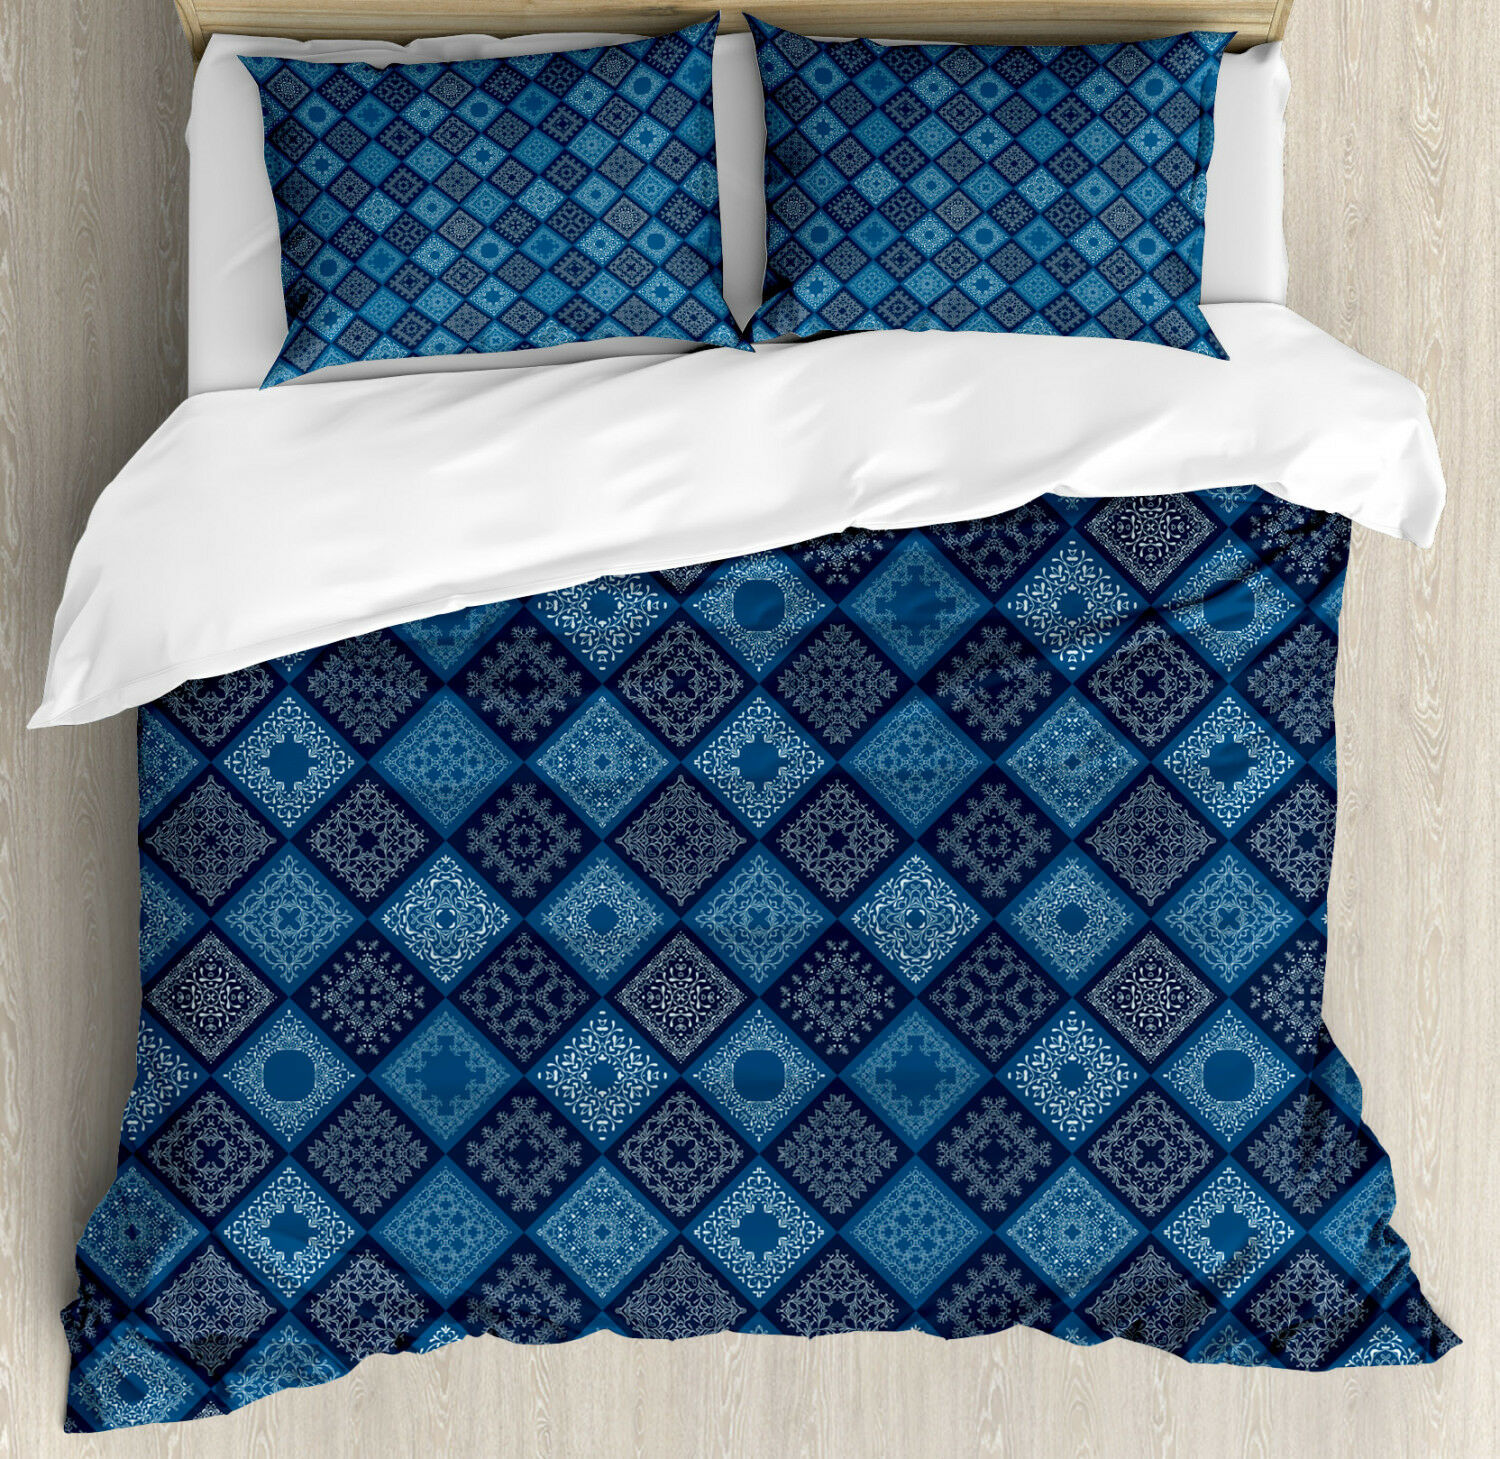 bluee Duvet Cover Set with Pillow Shams Ethnic Detailed Squares Print